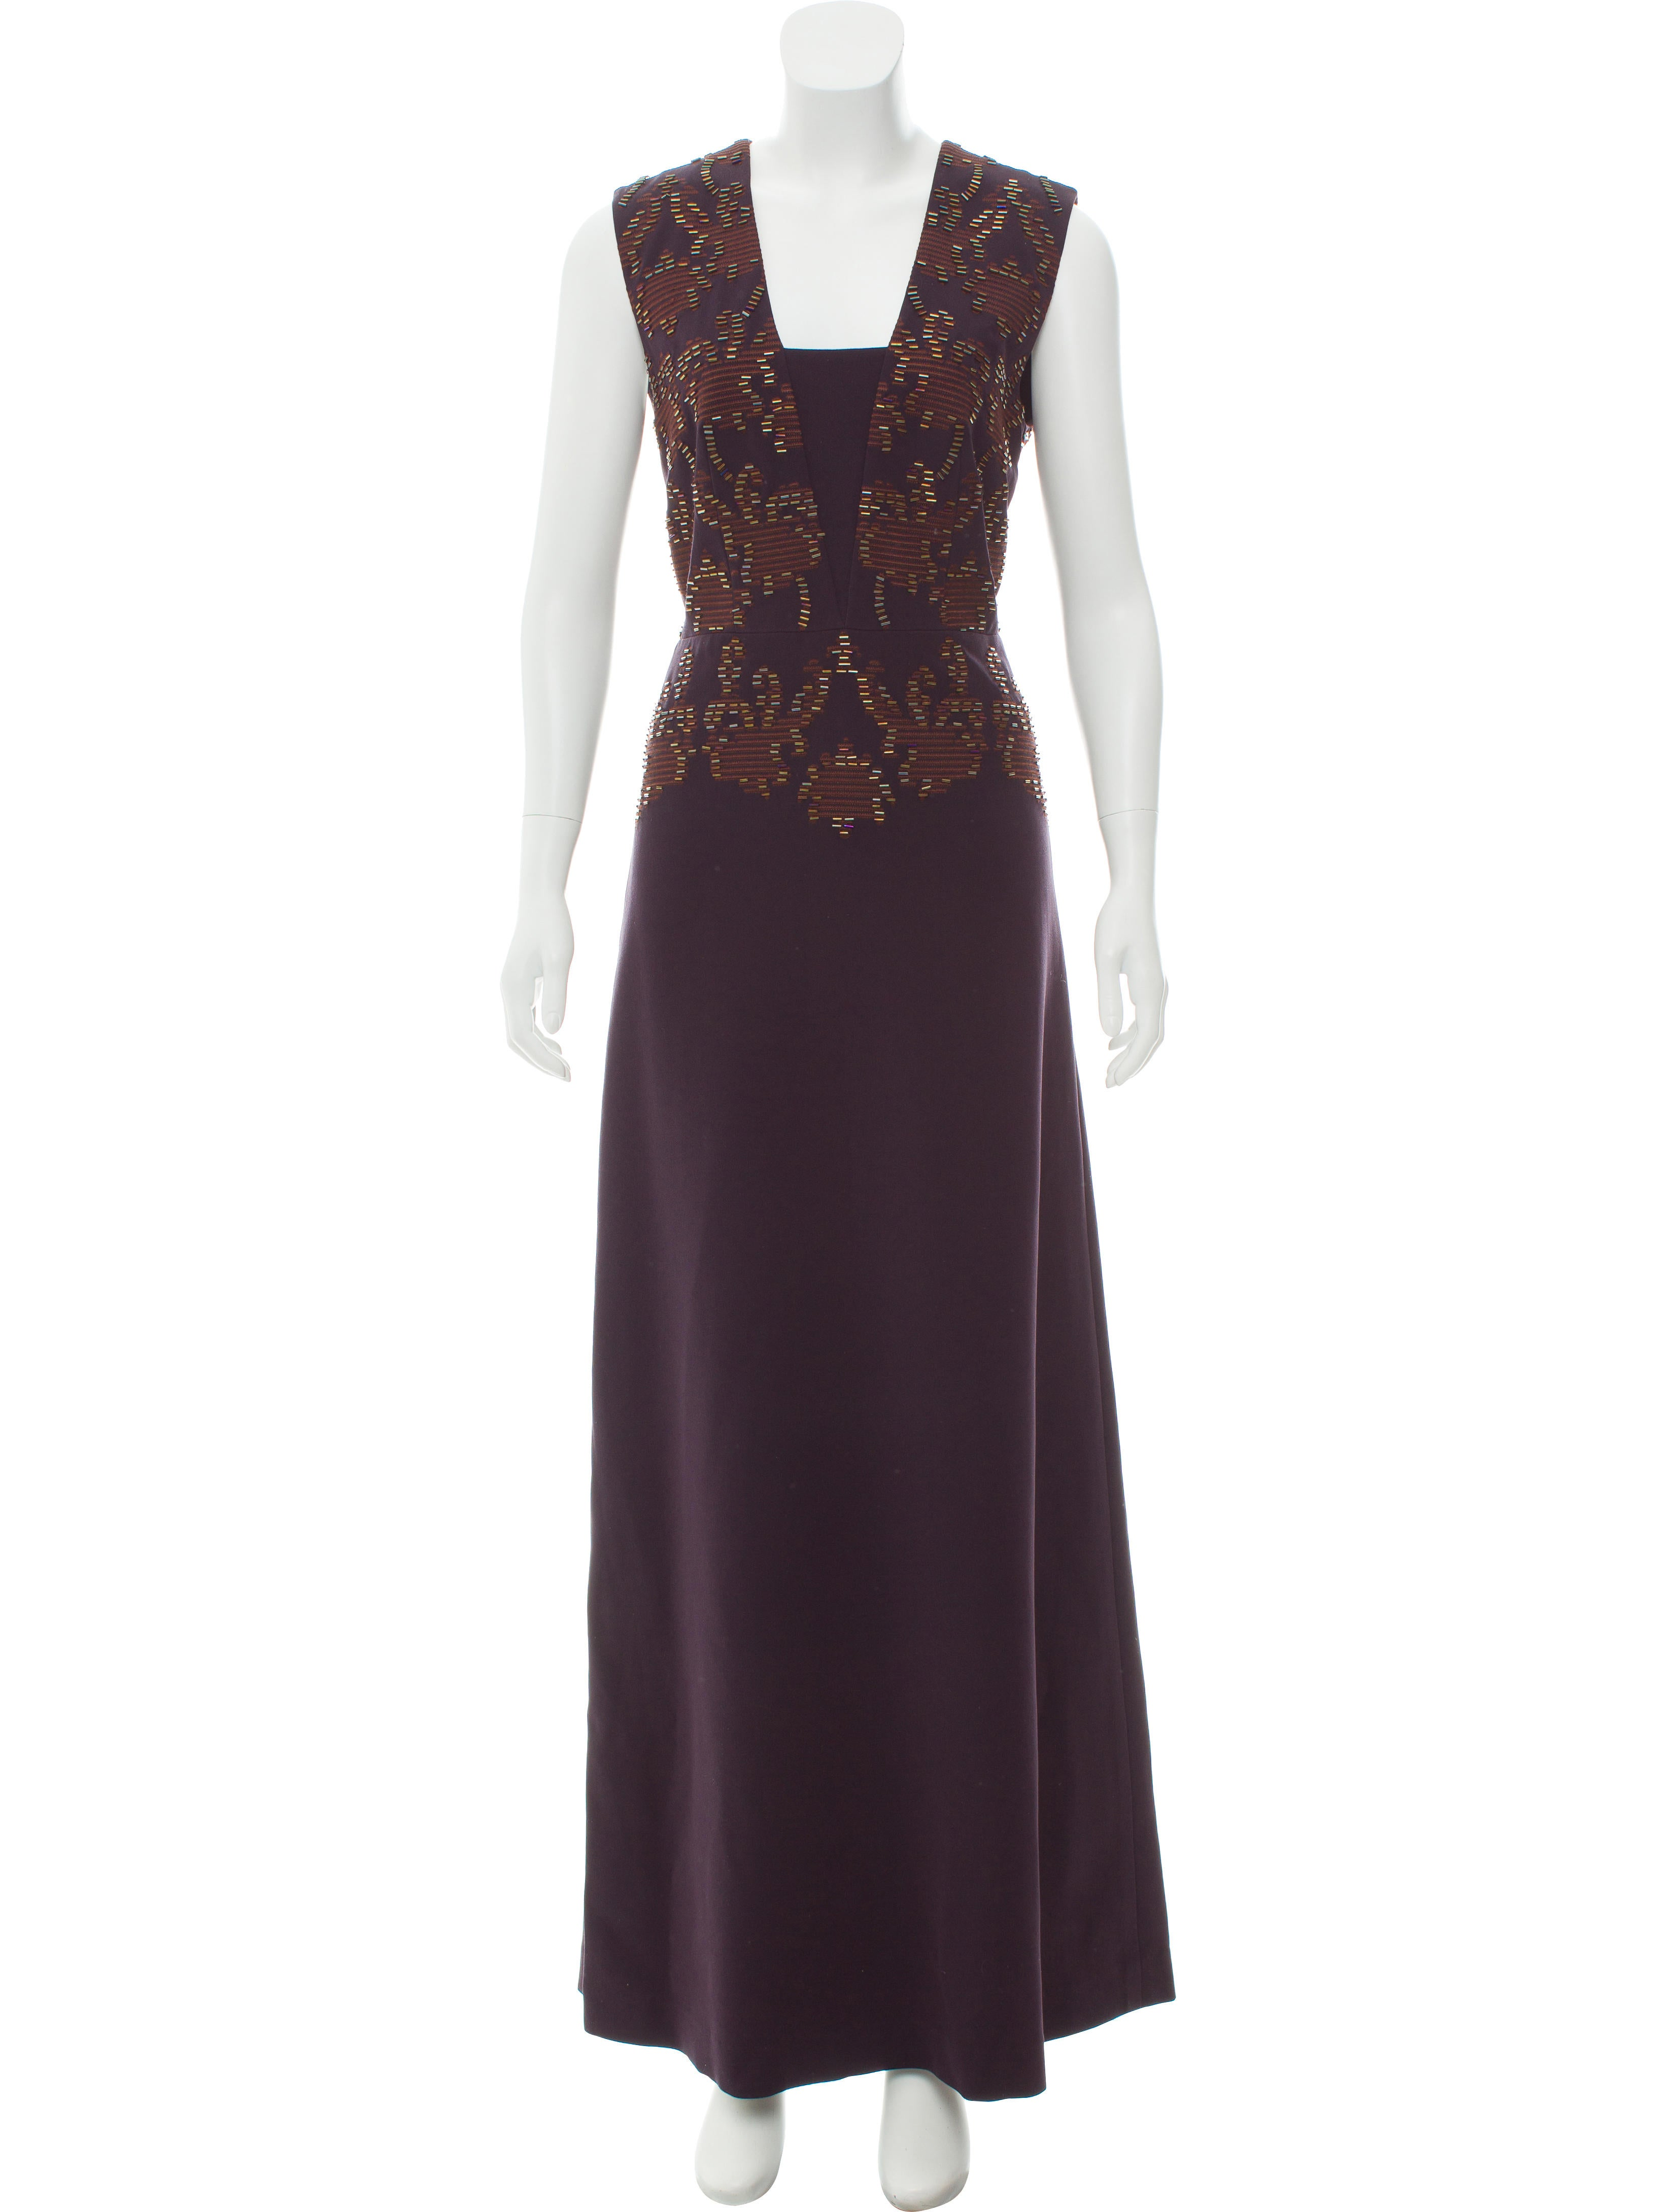 Tory Burch Embellished Evening Dress - Clothing - WTO124292 | The ...